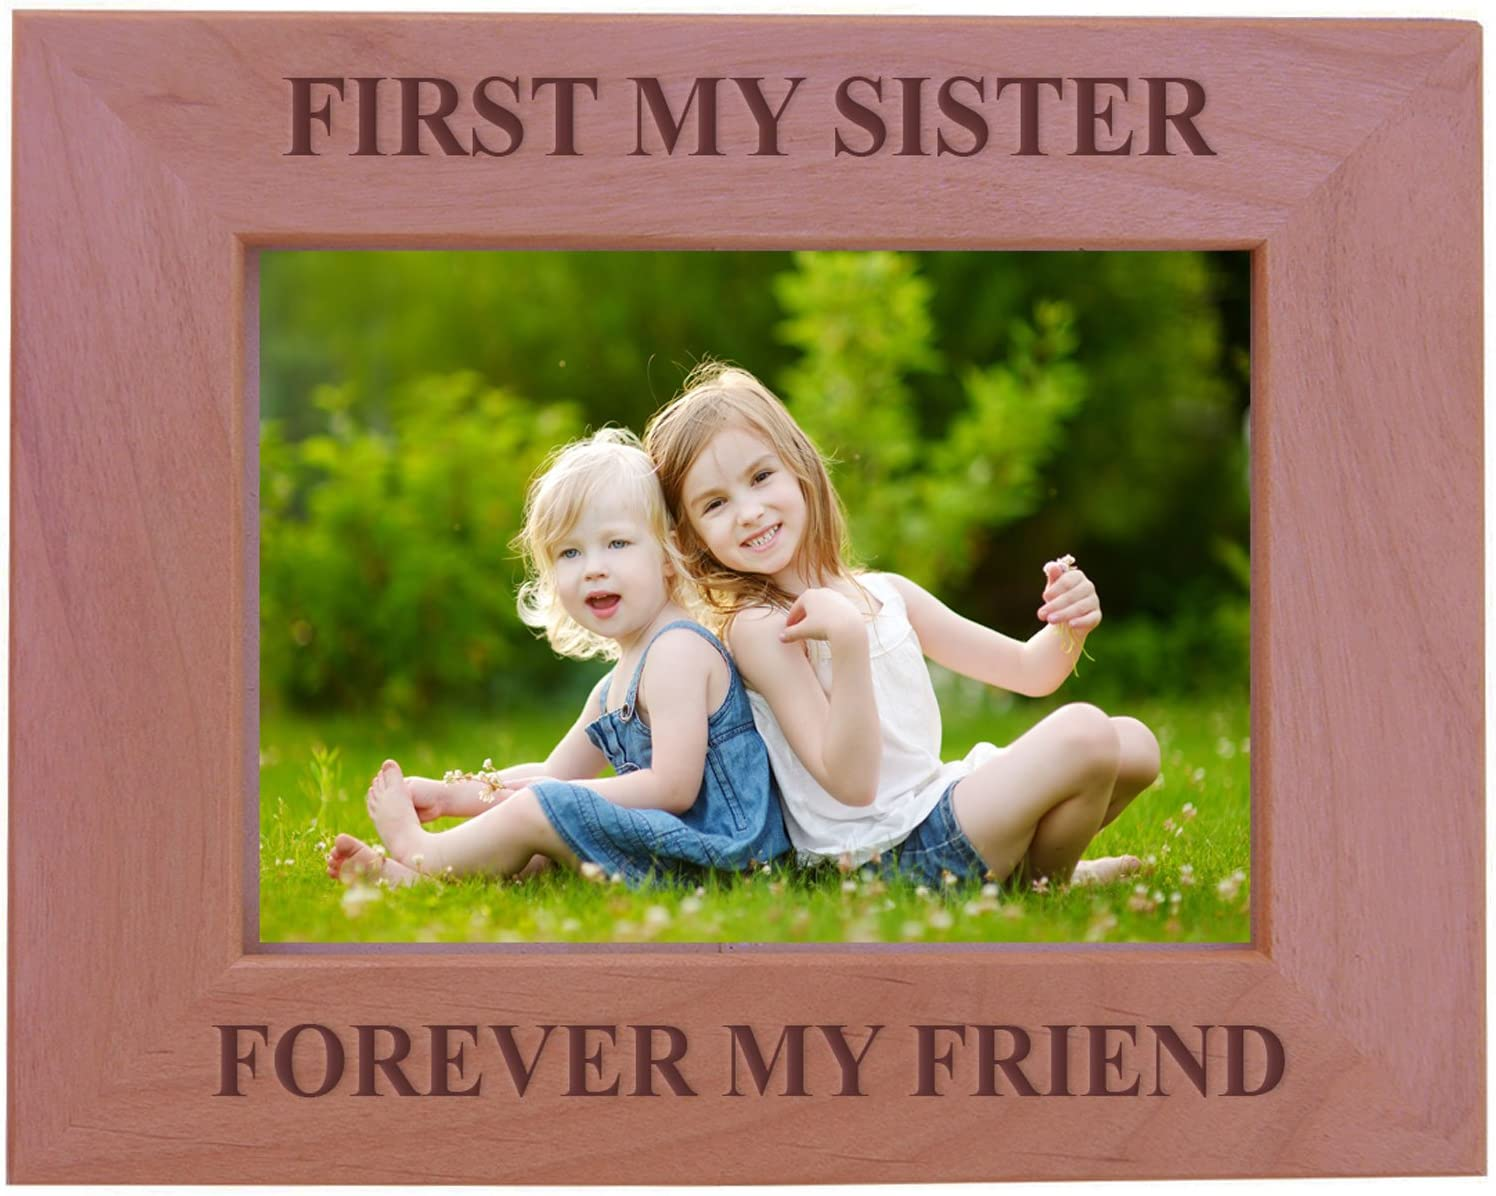 Personalized Birthday Gift For Sister Sister Photo Frame Custom Picture Frame {First My Sister Forever My Friend} Sister Gift Photo Frame